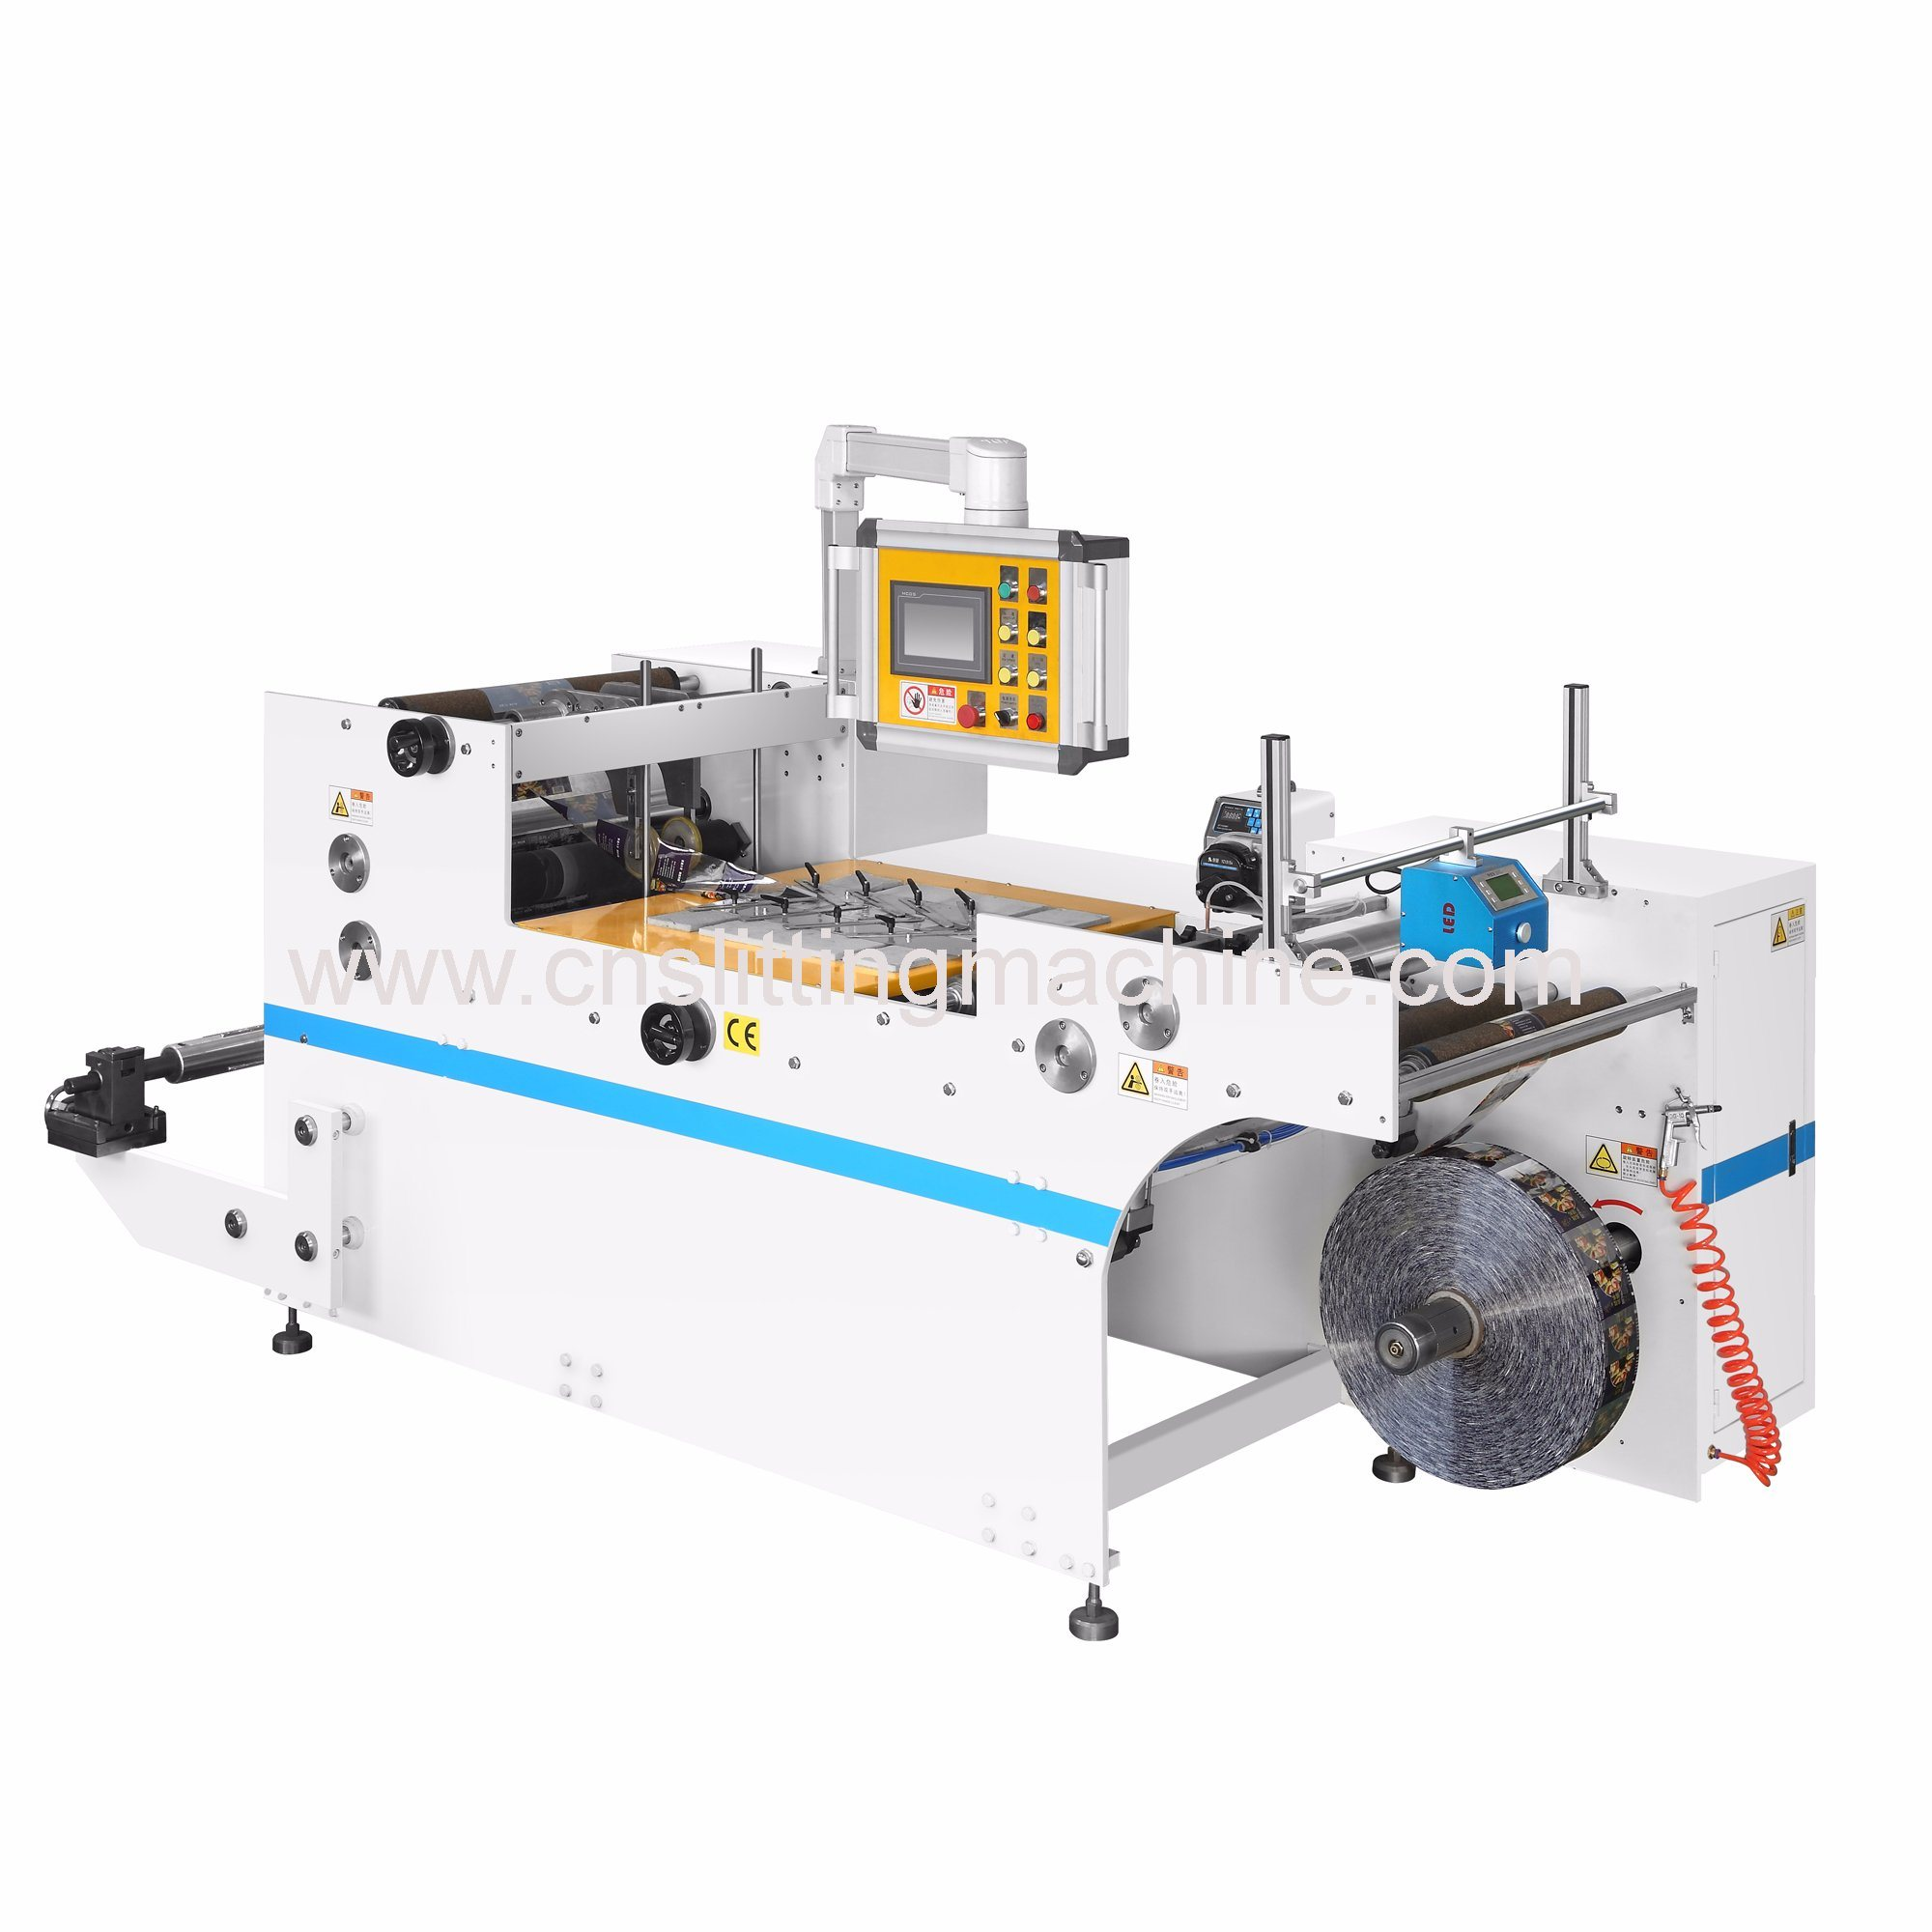 High Speed PVC Sealing Machine, Center Sealing Machine (Mold-less type)